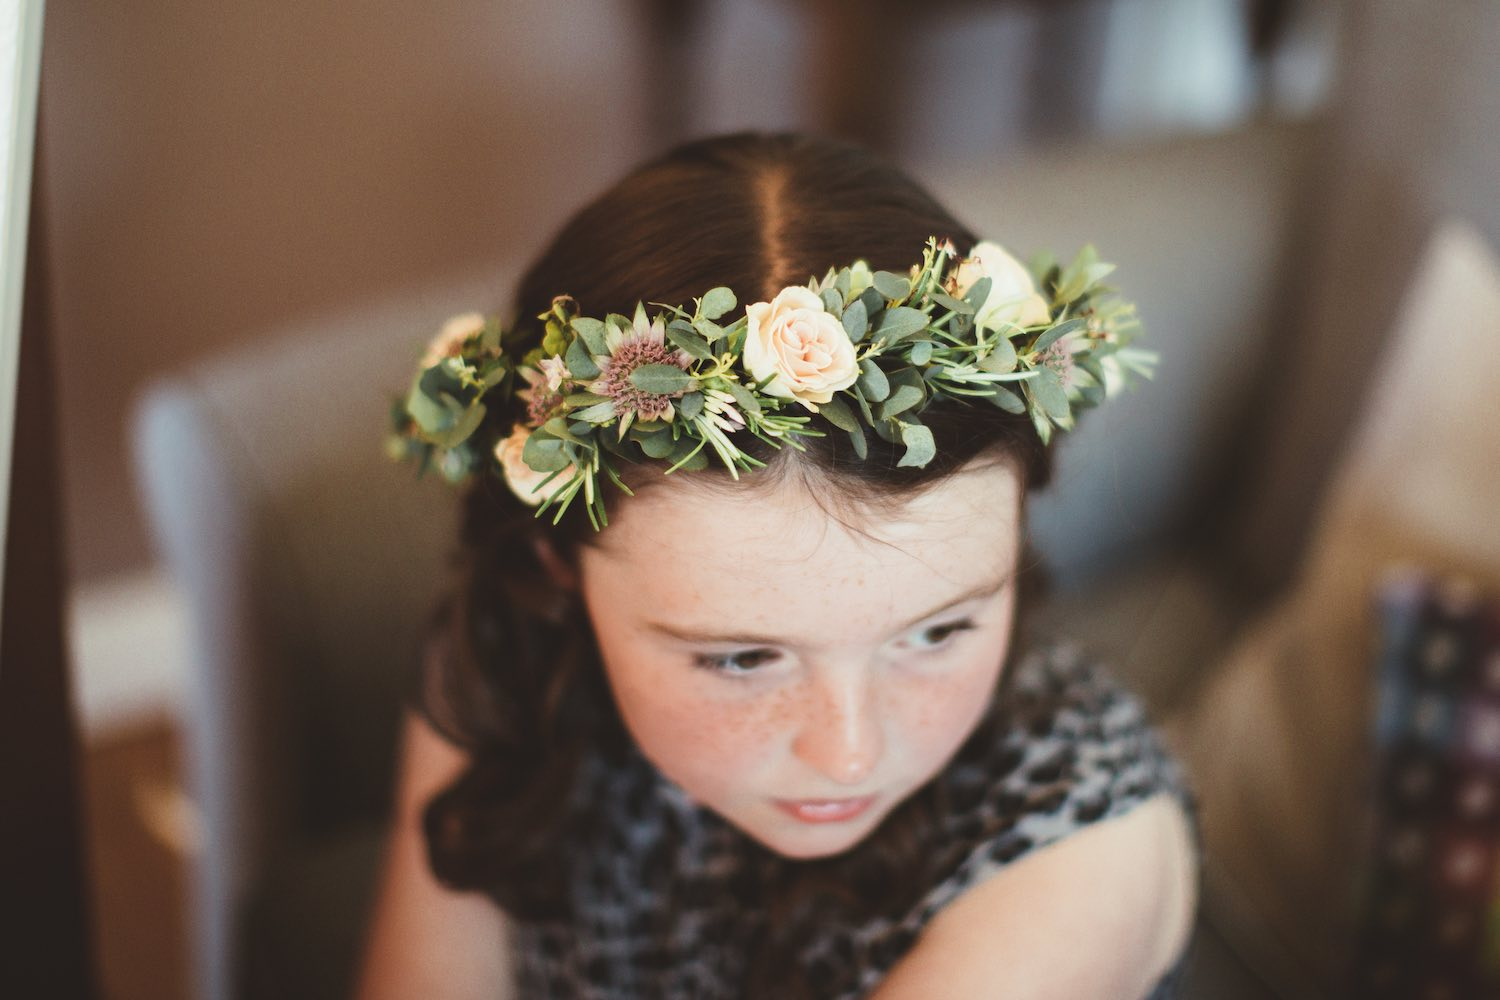 Flower girl wearing flower crown with pale pink and cream roses